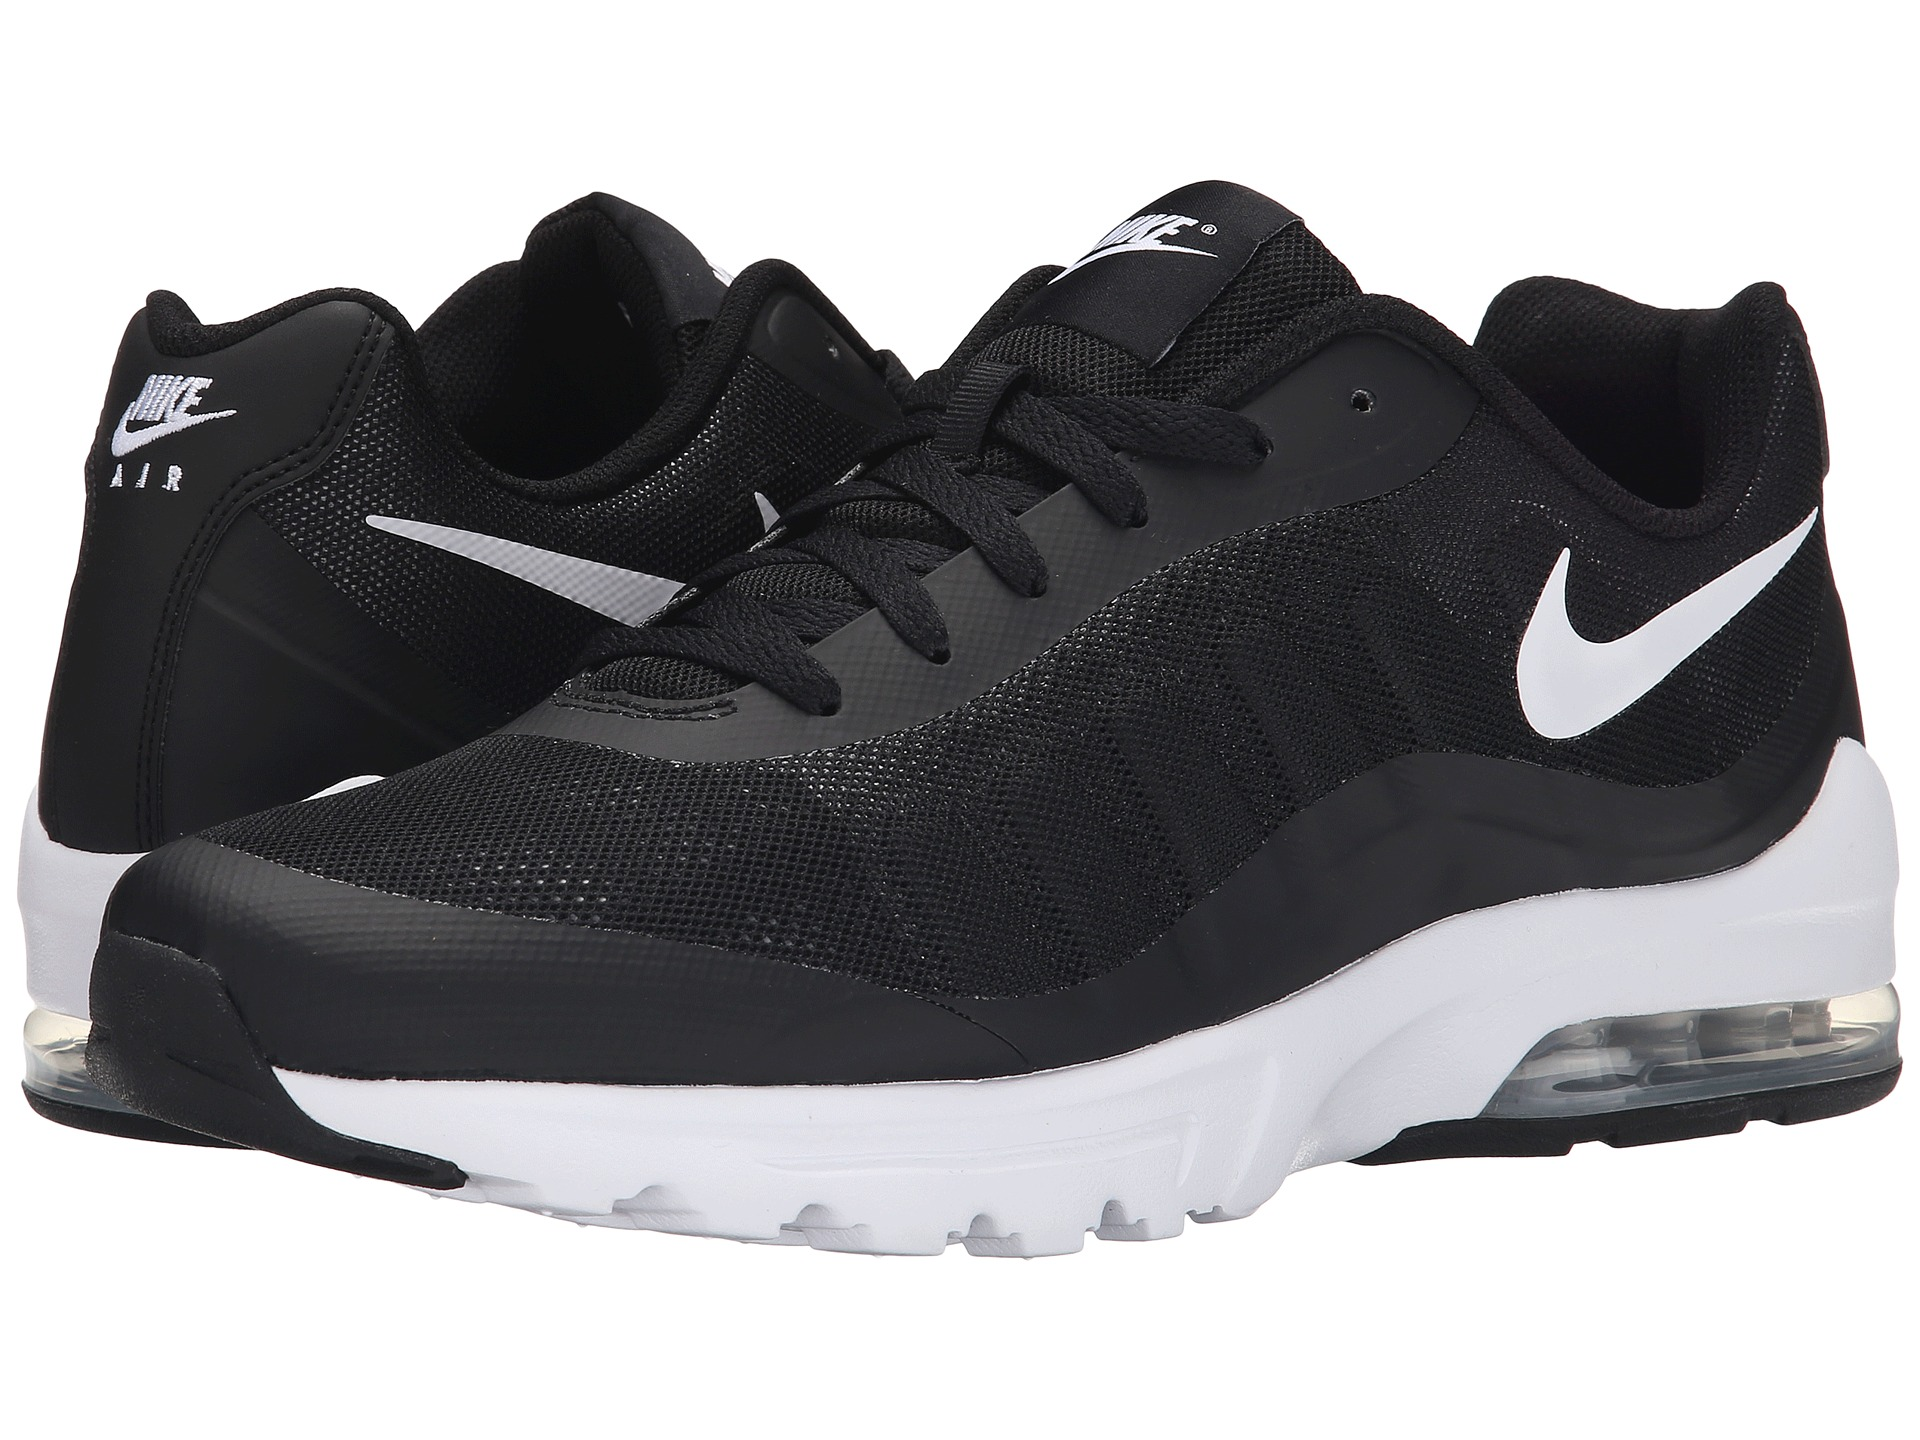 nike air max invigor free shipping both ways. Black Bedroom Furniture Sets. Home Design Ideas